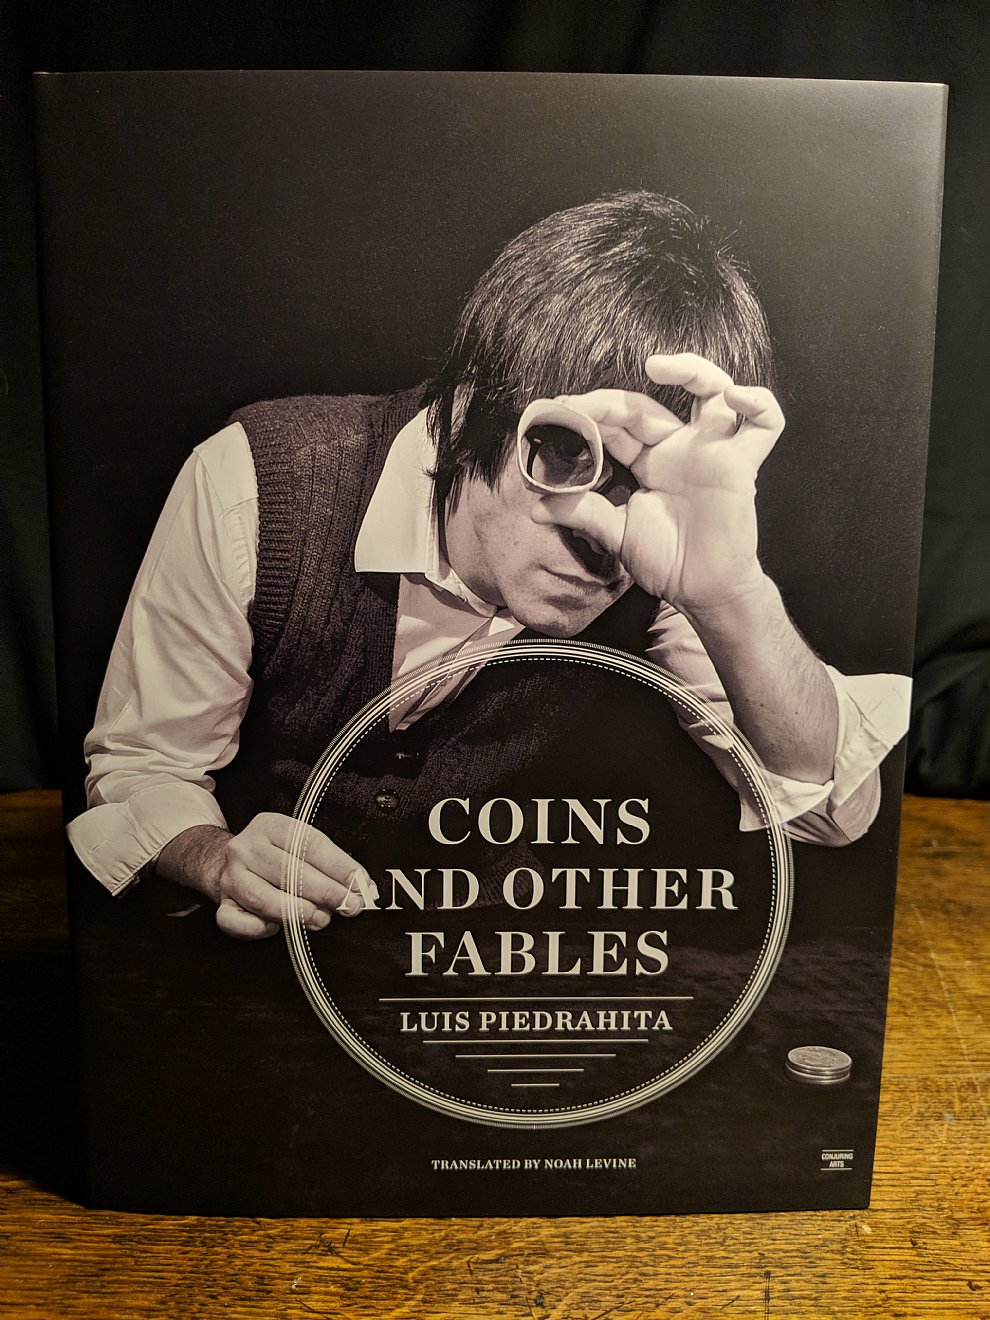 Coins and Other Fables by Luis Piedrahita